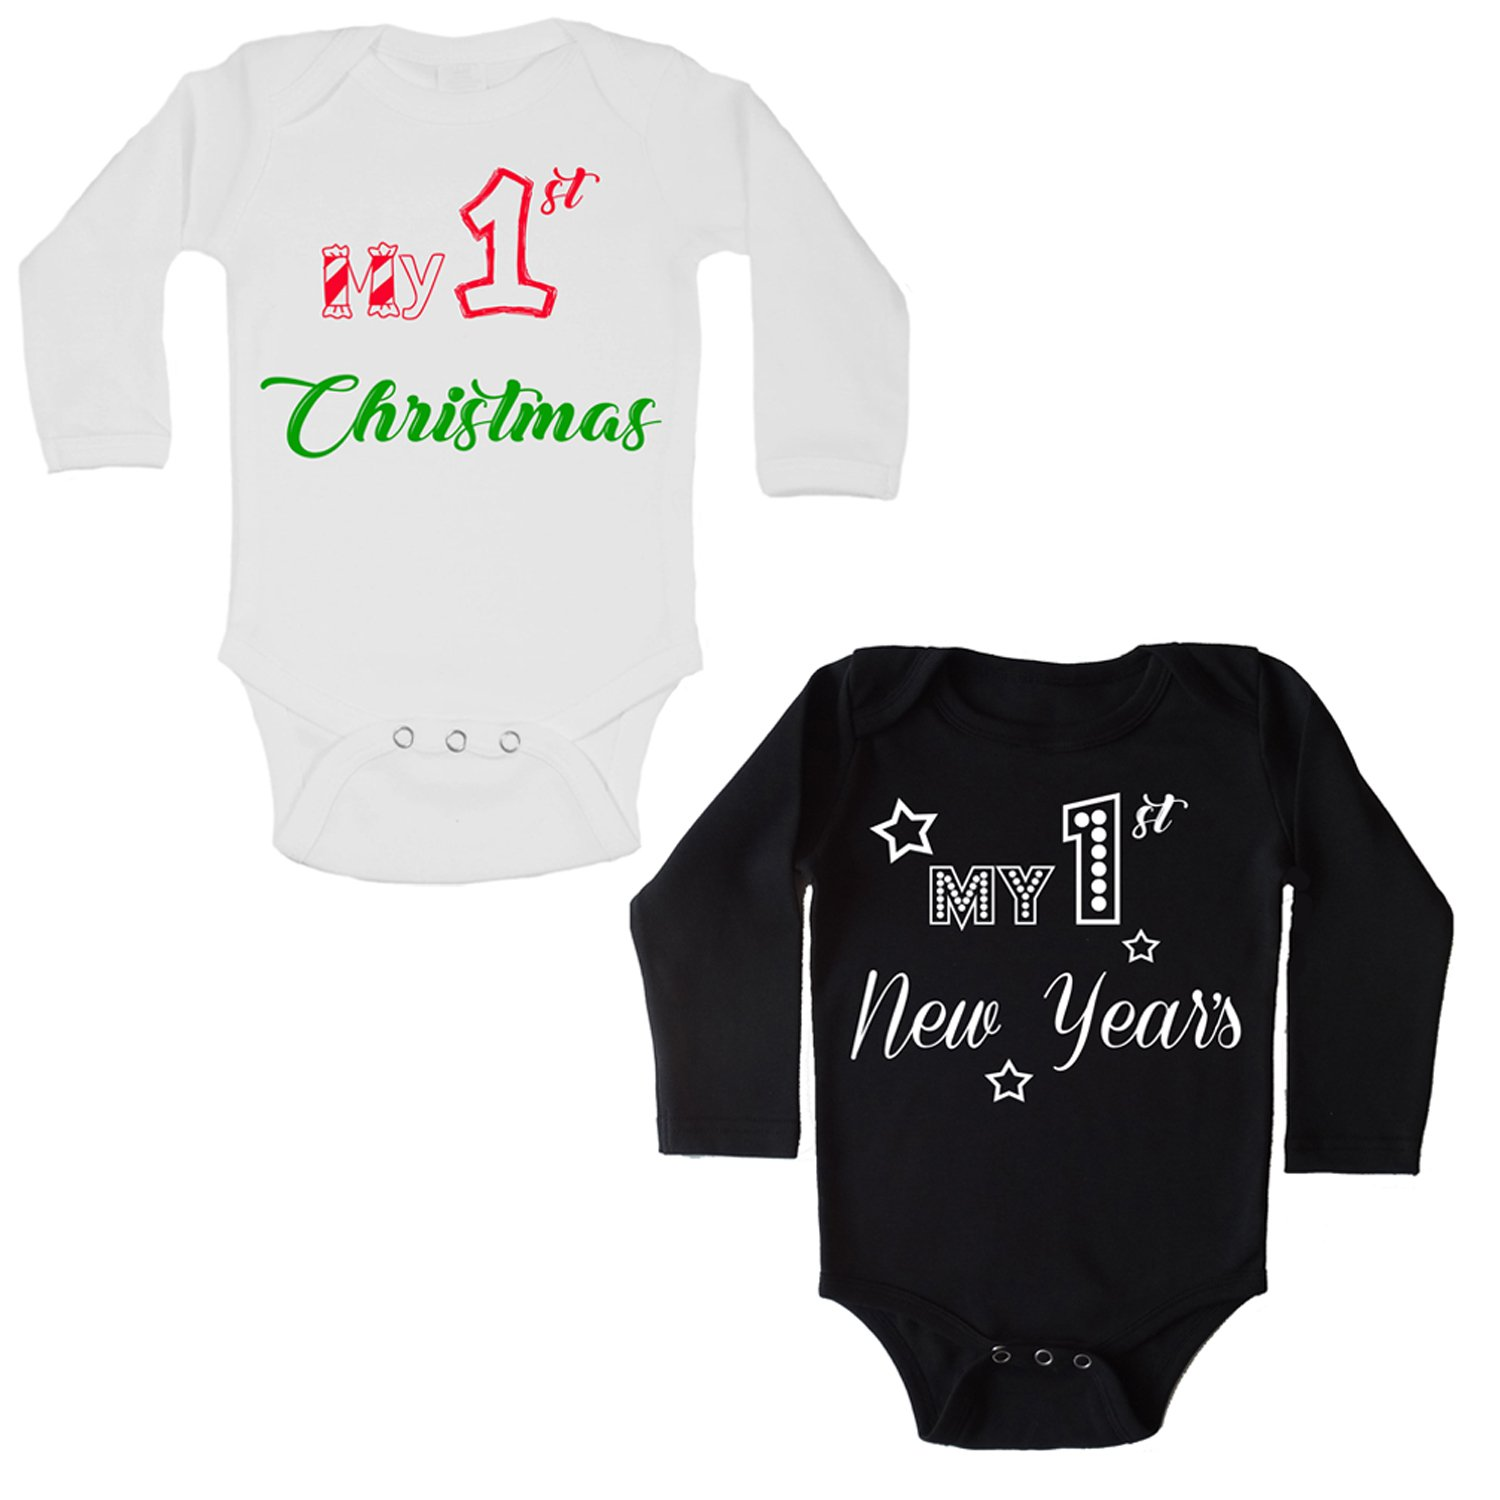 First Christmas + First New Years Baby Onesie SET | Long Sleeve Onesies PRIME